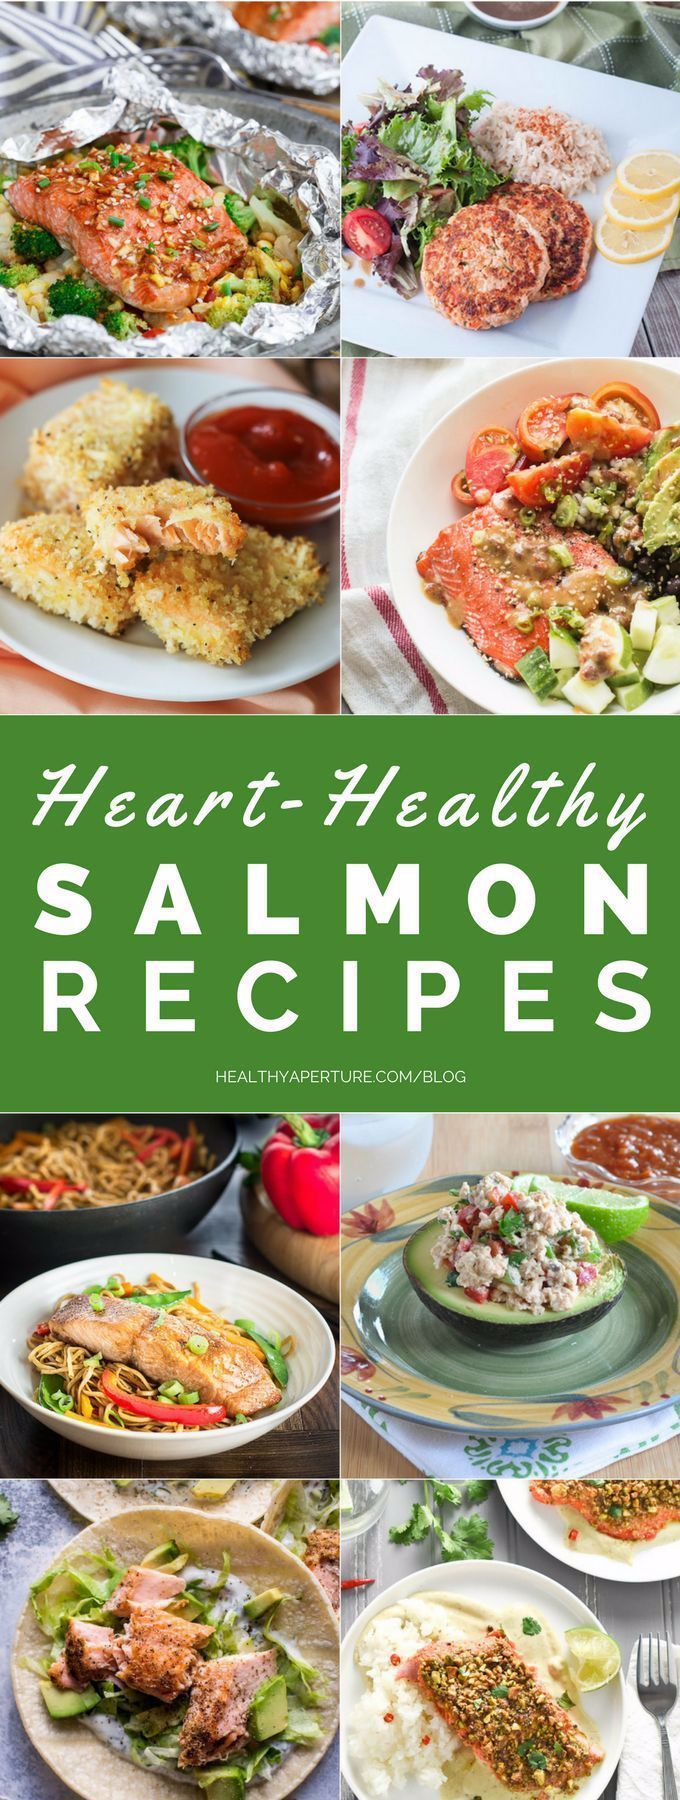 These Heart-Healthy Salmon Recipes are perfect for a quick and easy lunch or dinner on a busy day! #...